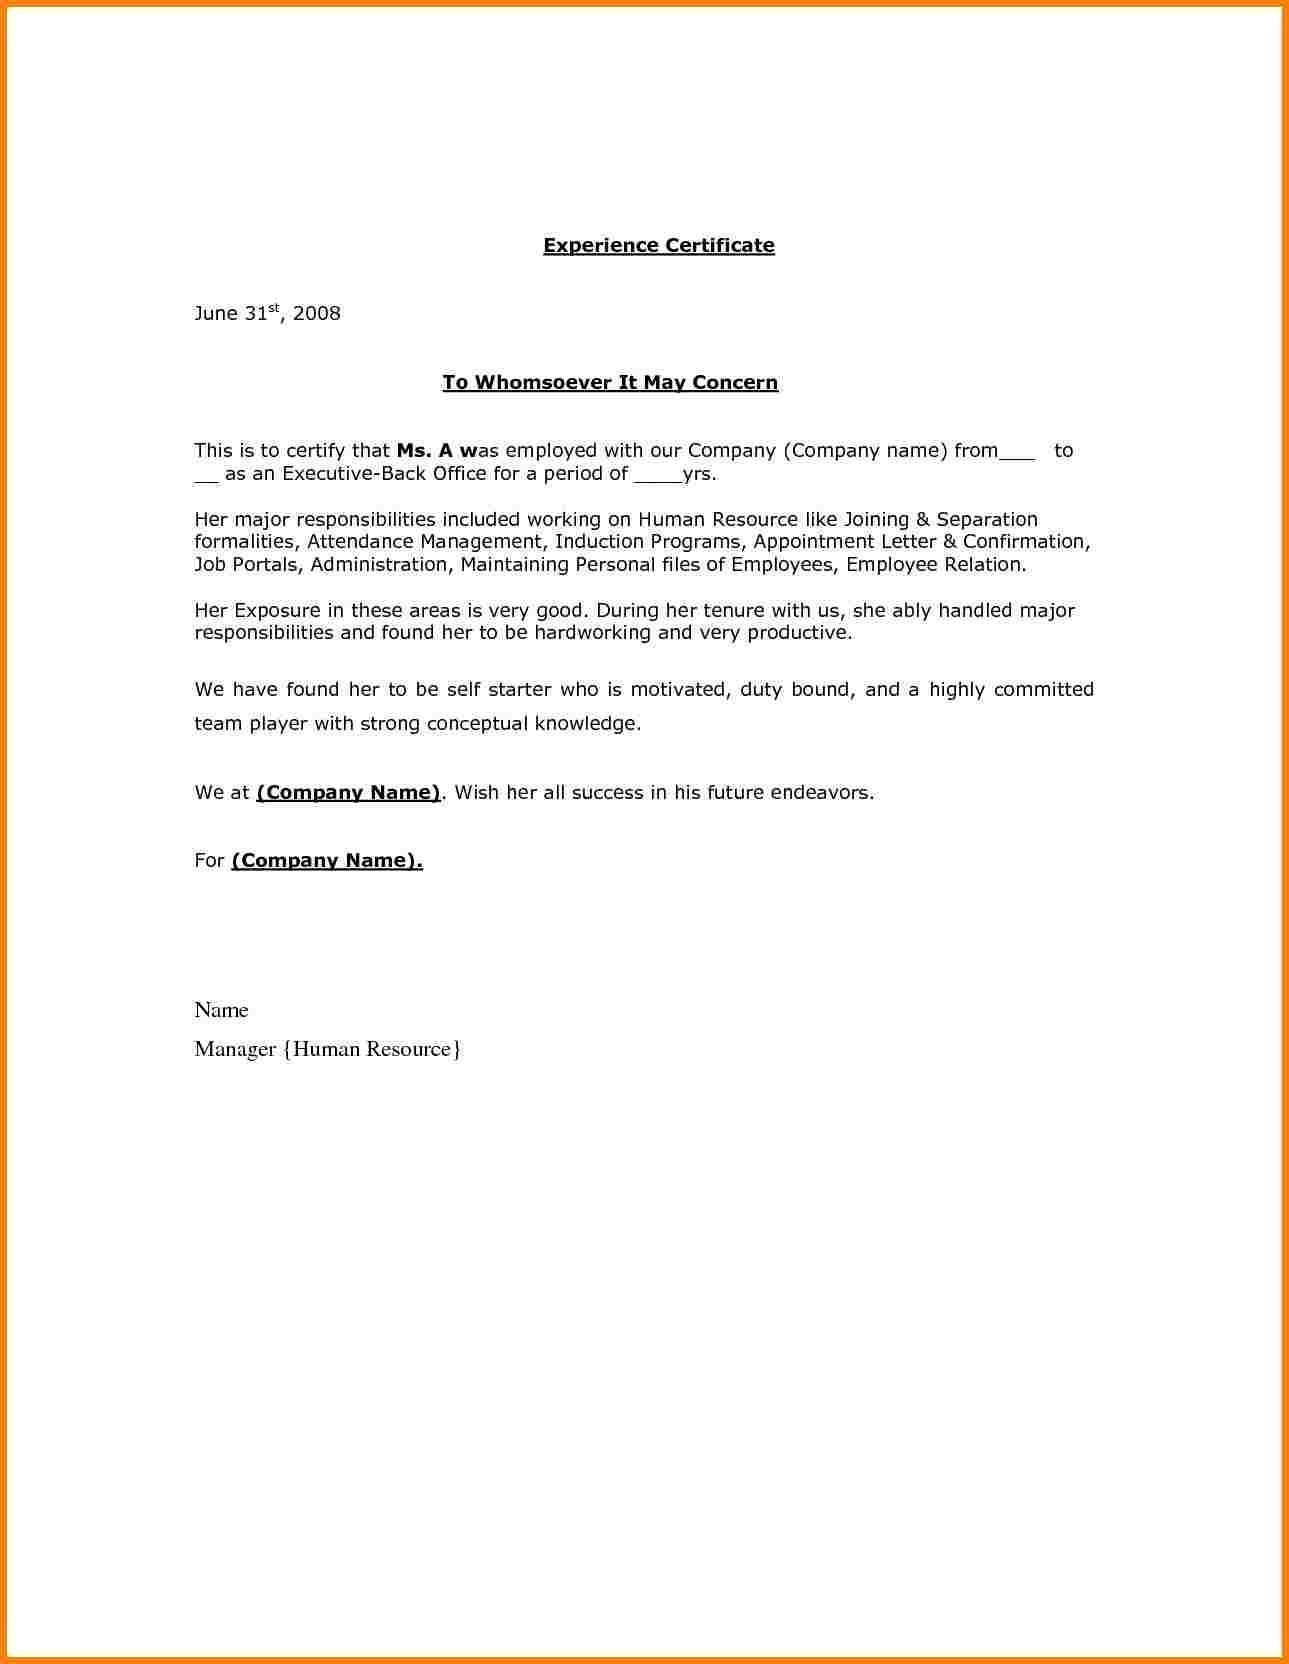 Letter Of Separation From Employer Template - Employment Certificate Sample Doc Copy Unemployment Certificate